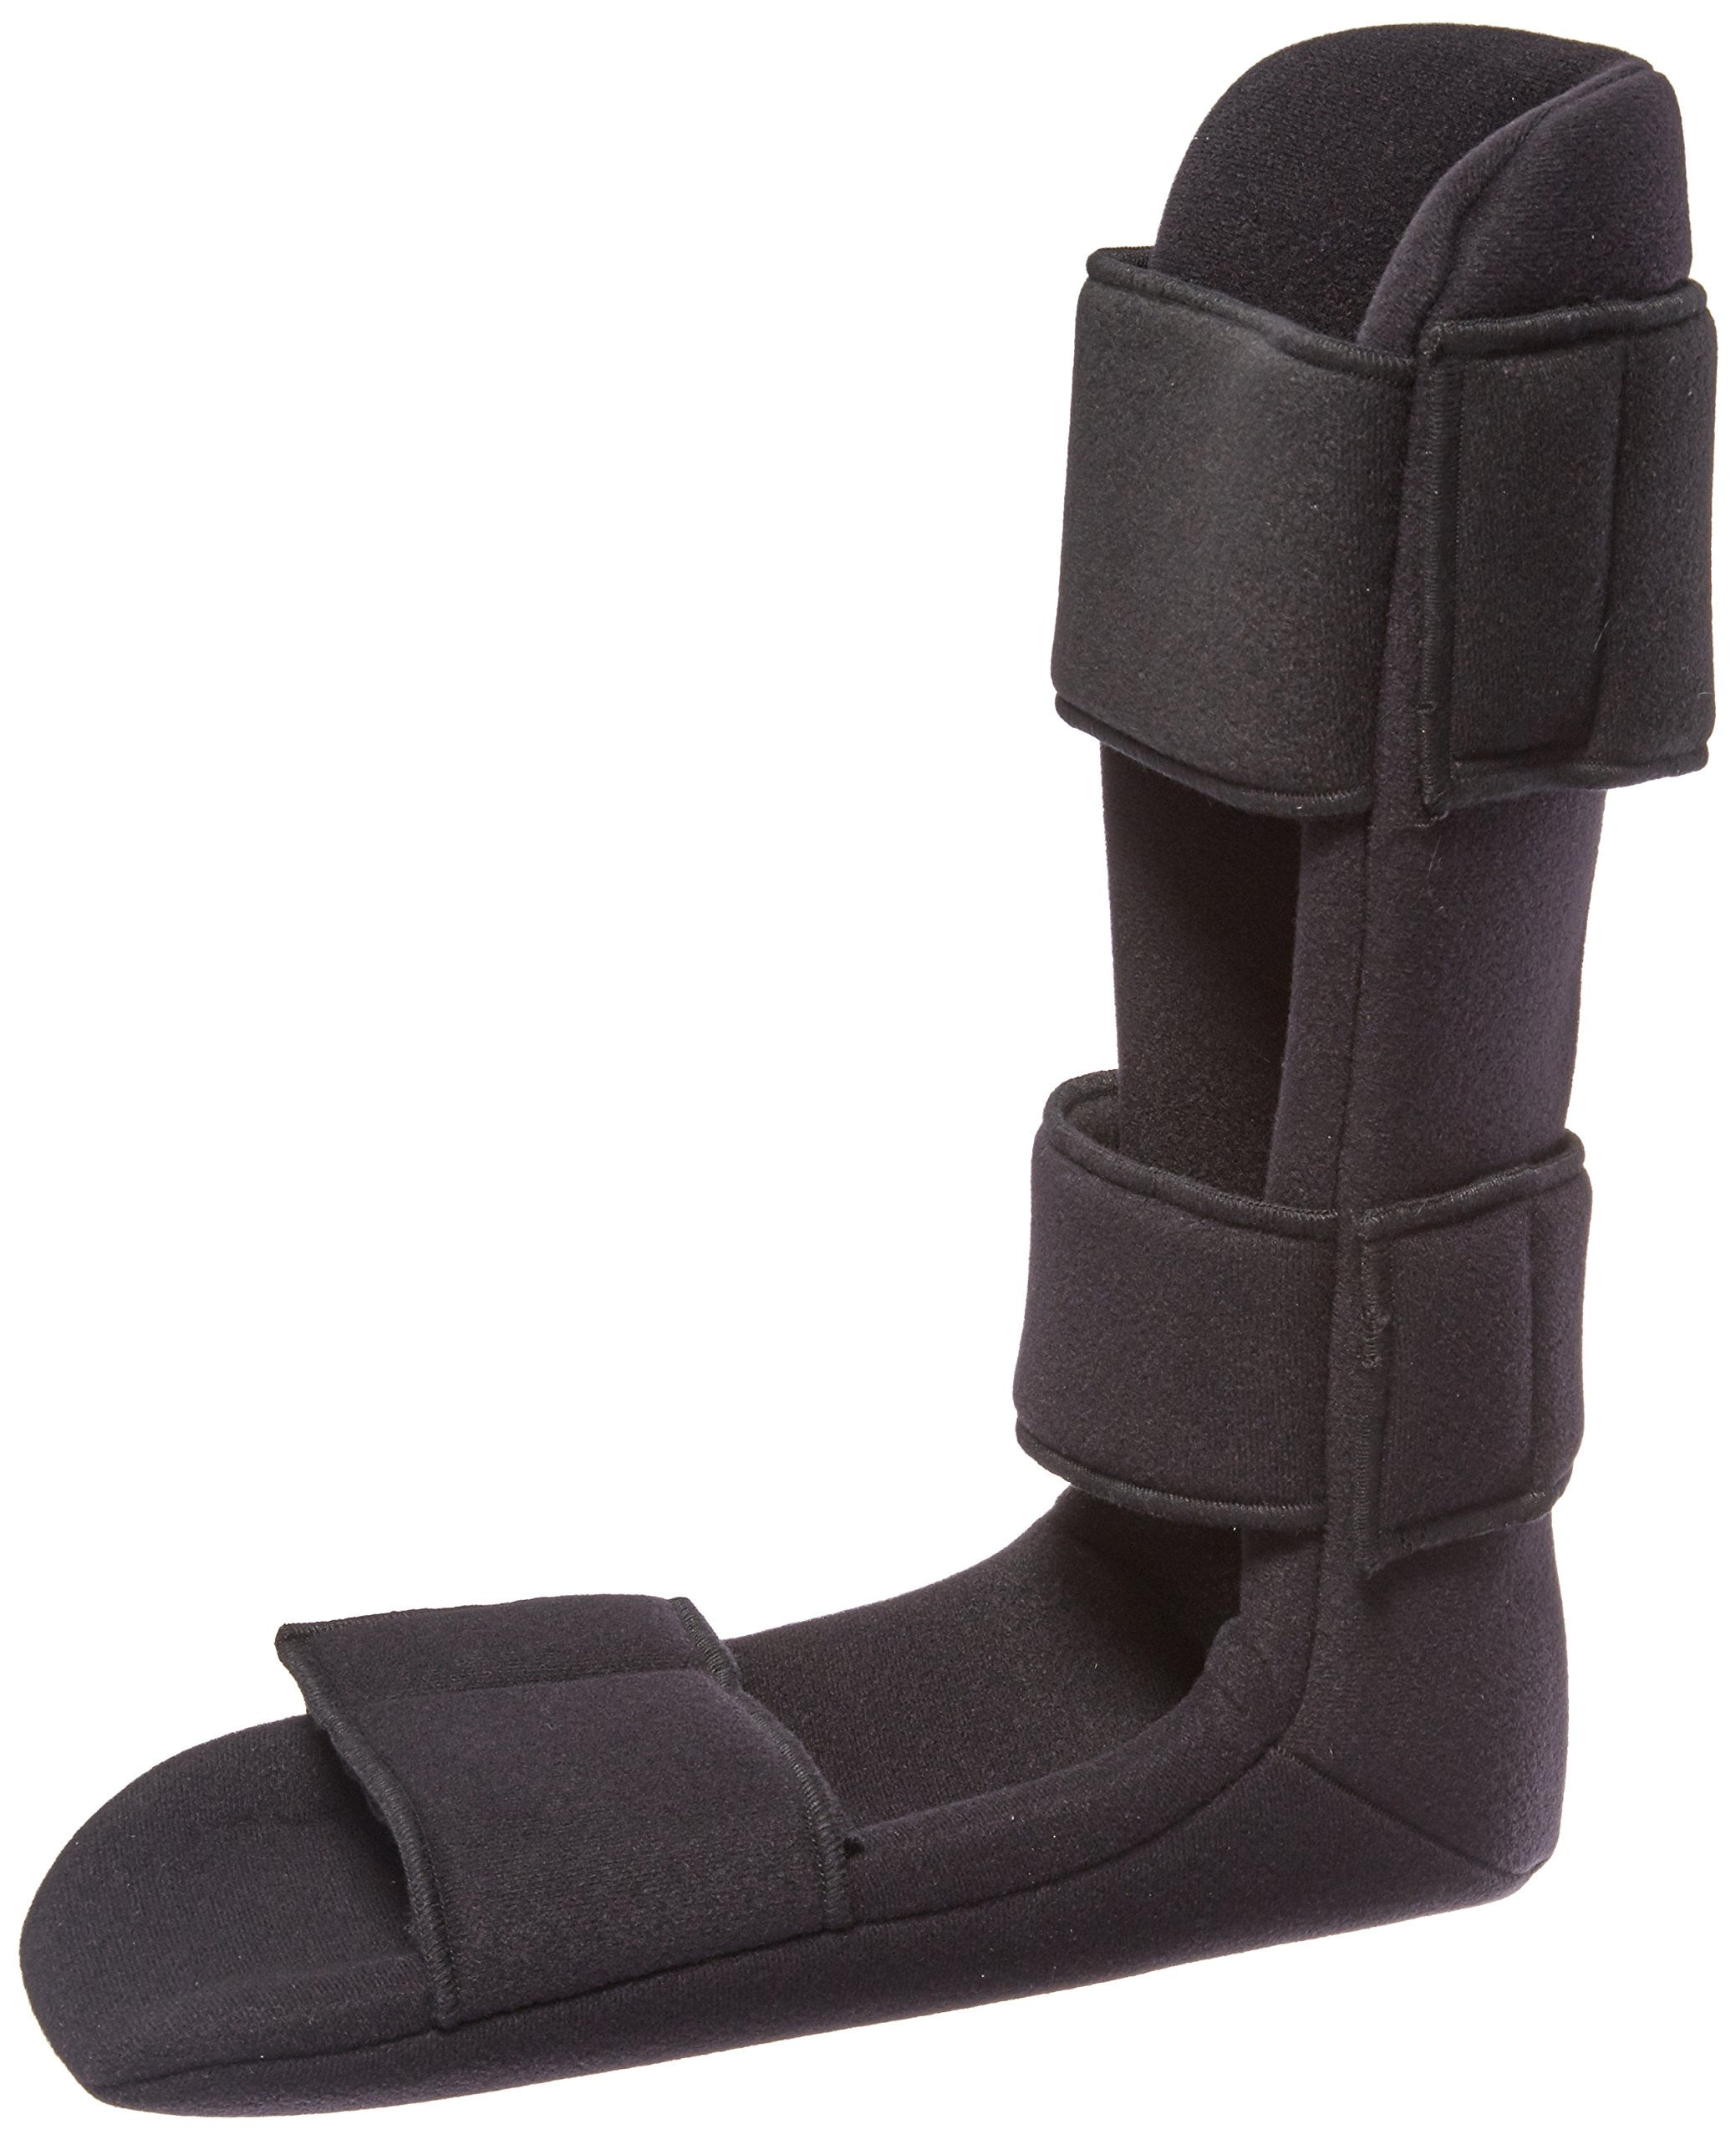 Bird & Cronin 08144804 Baker Plantar Fasciitis Night Splint, Large